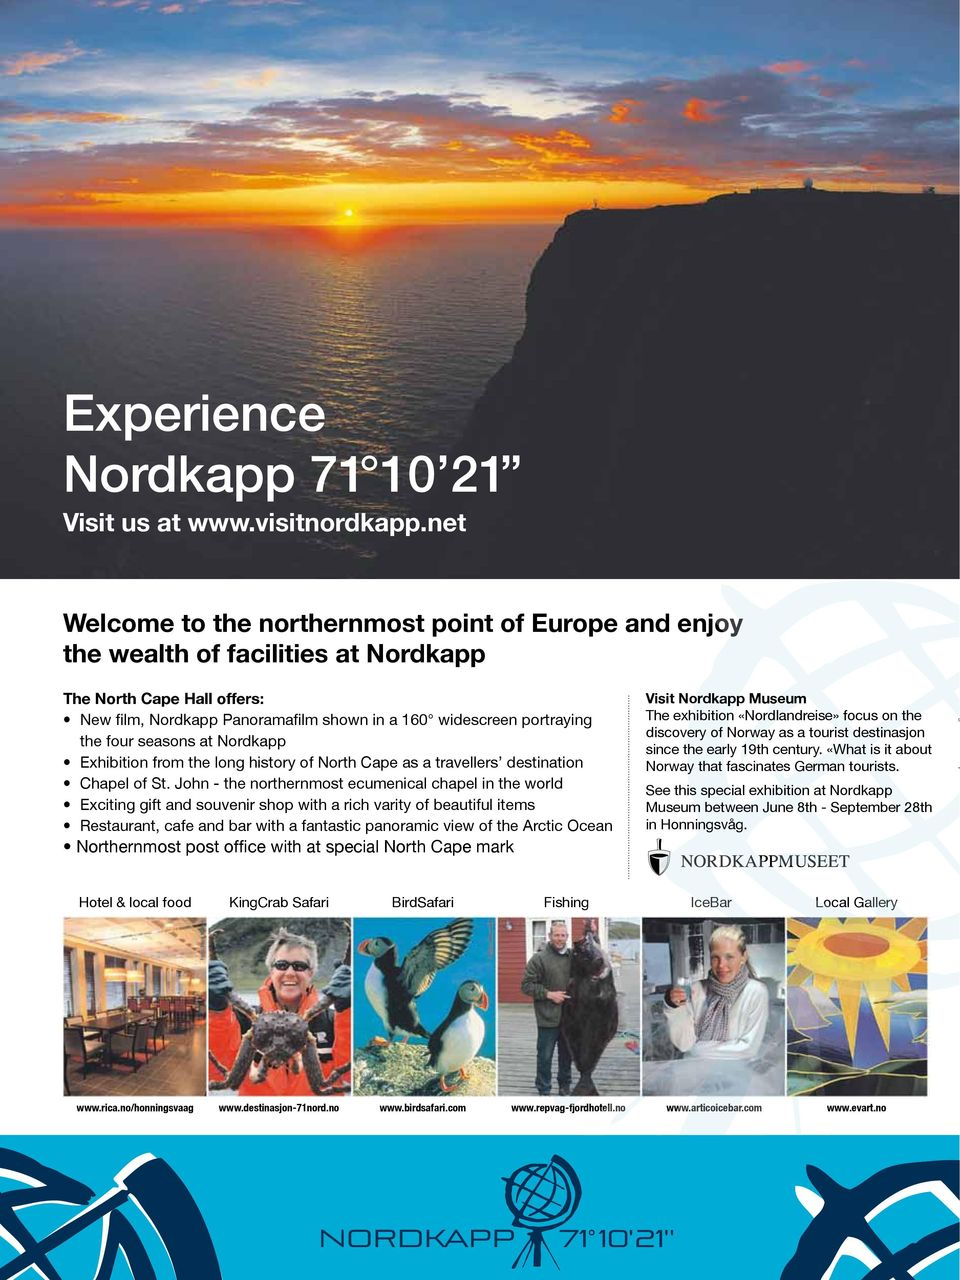 four seasons at Nordkapp Exhibition from the long history of North Cape as a travellers destination Chapel of St.